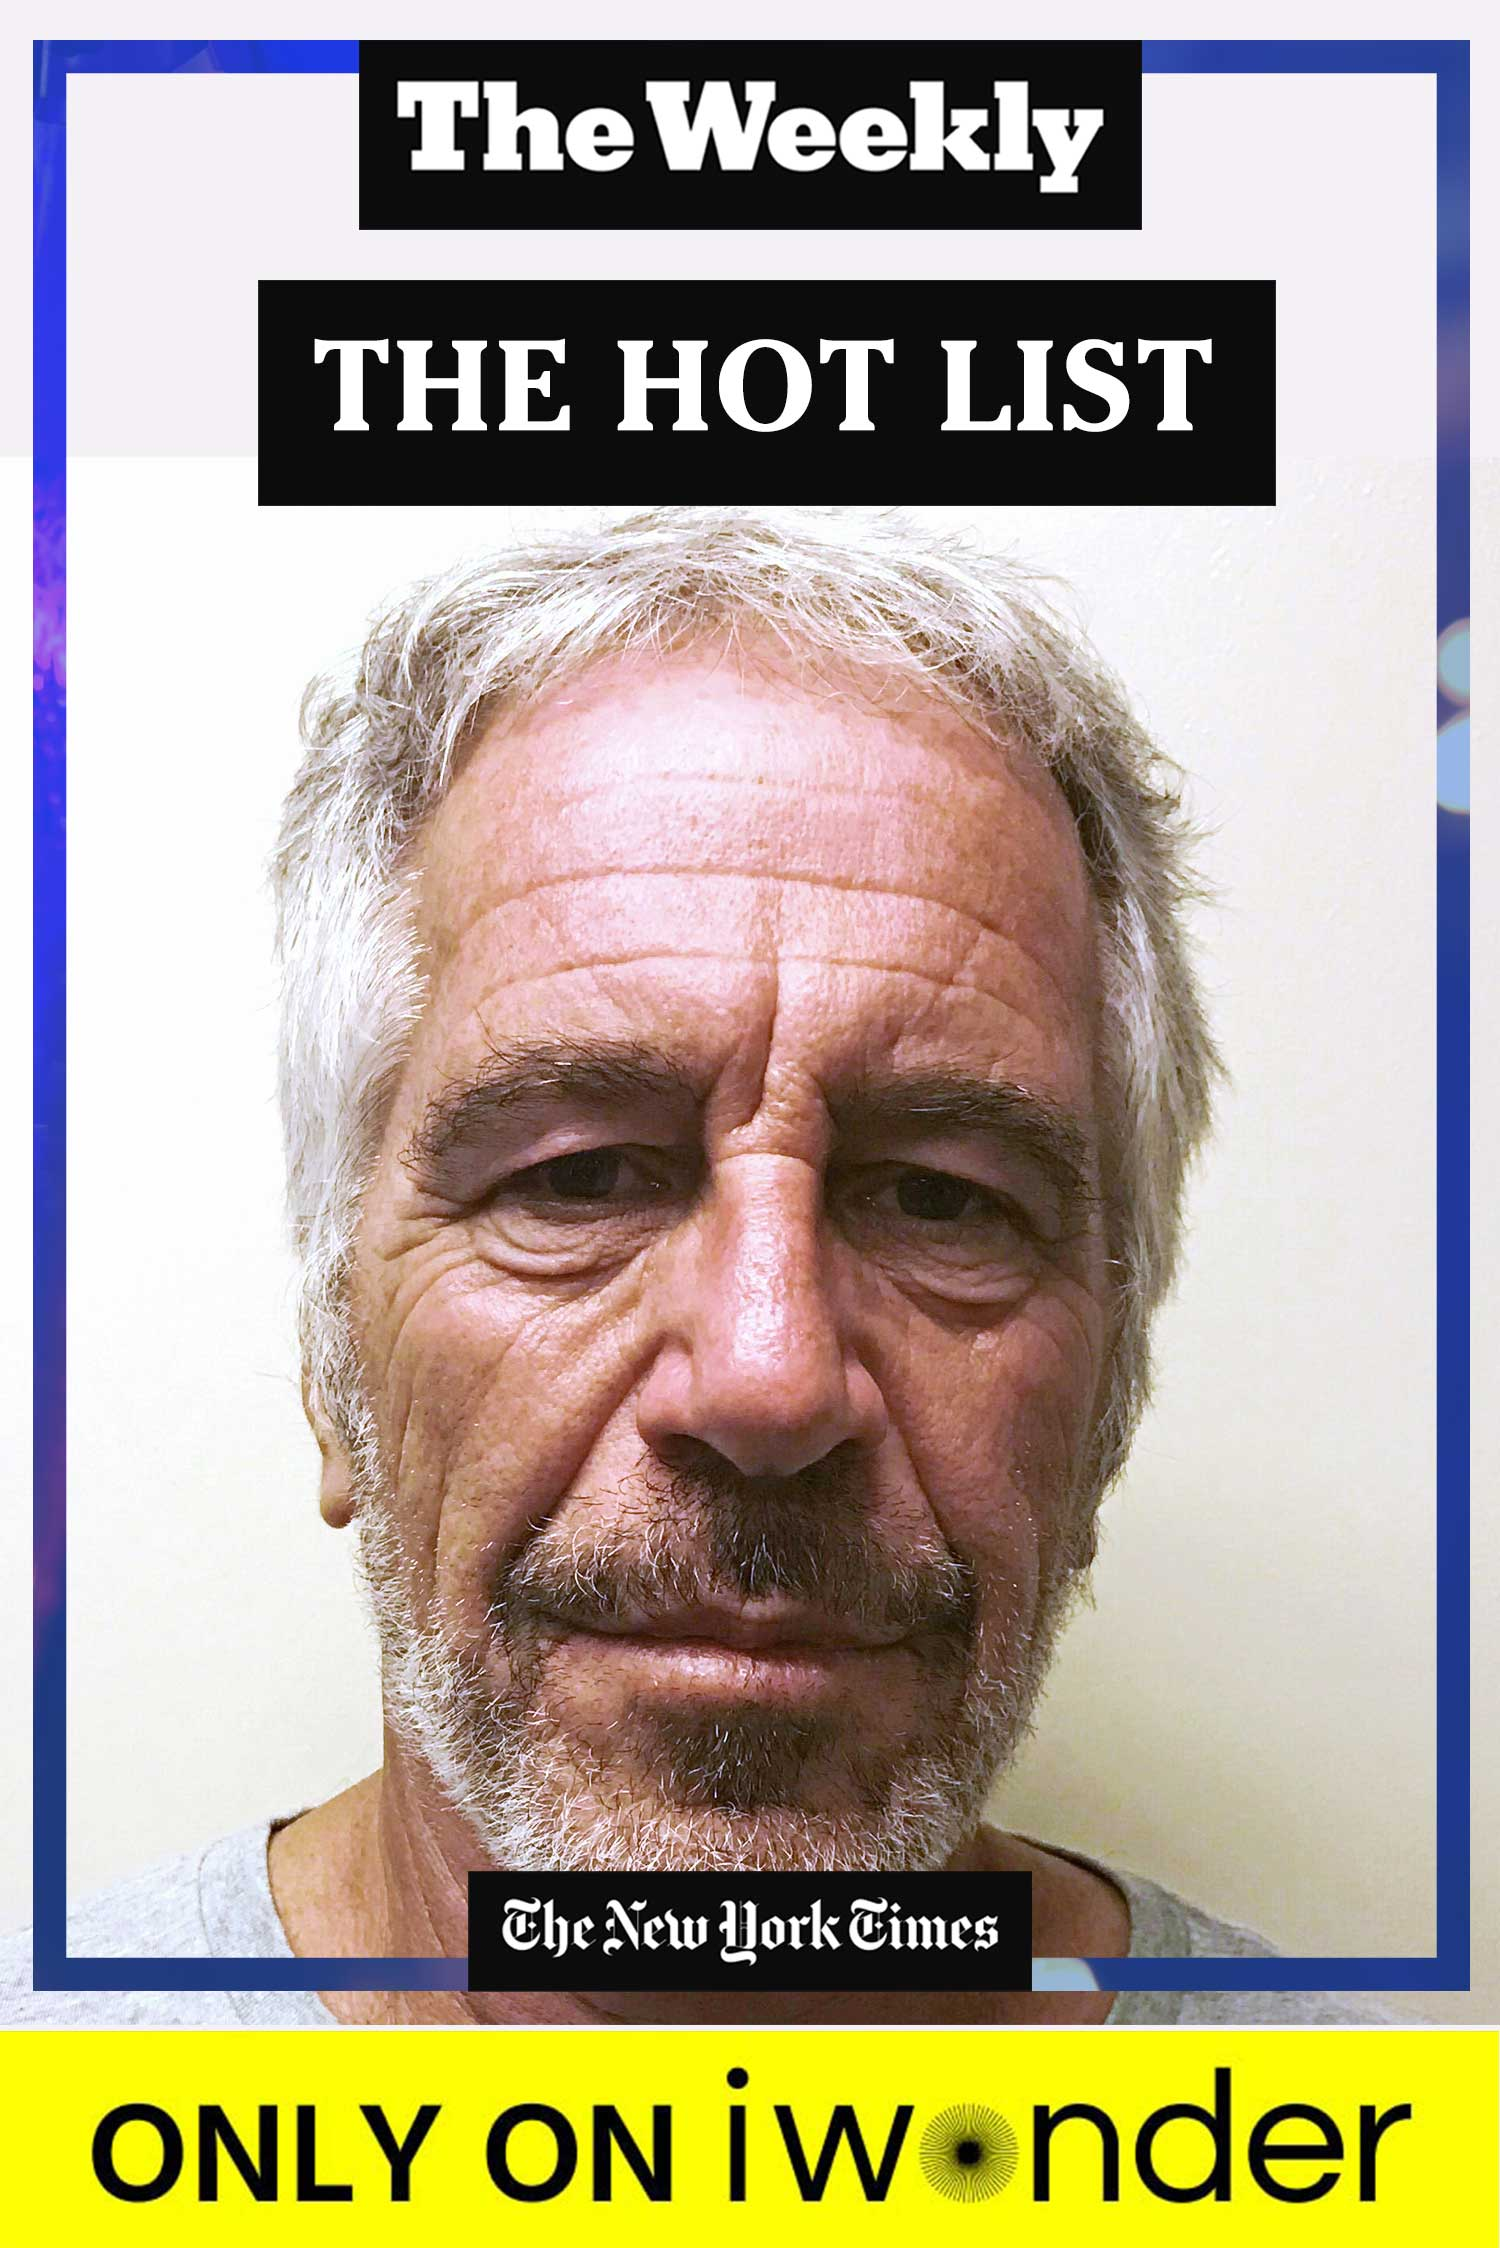 The Weekly: The Hot List